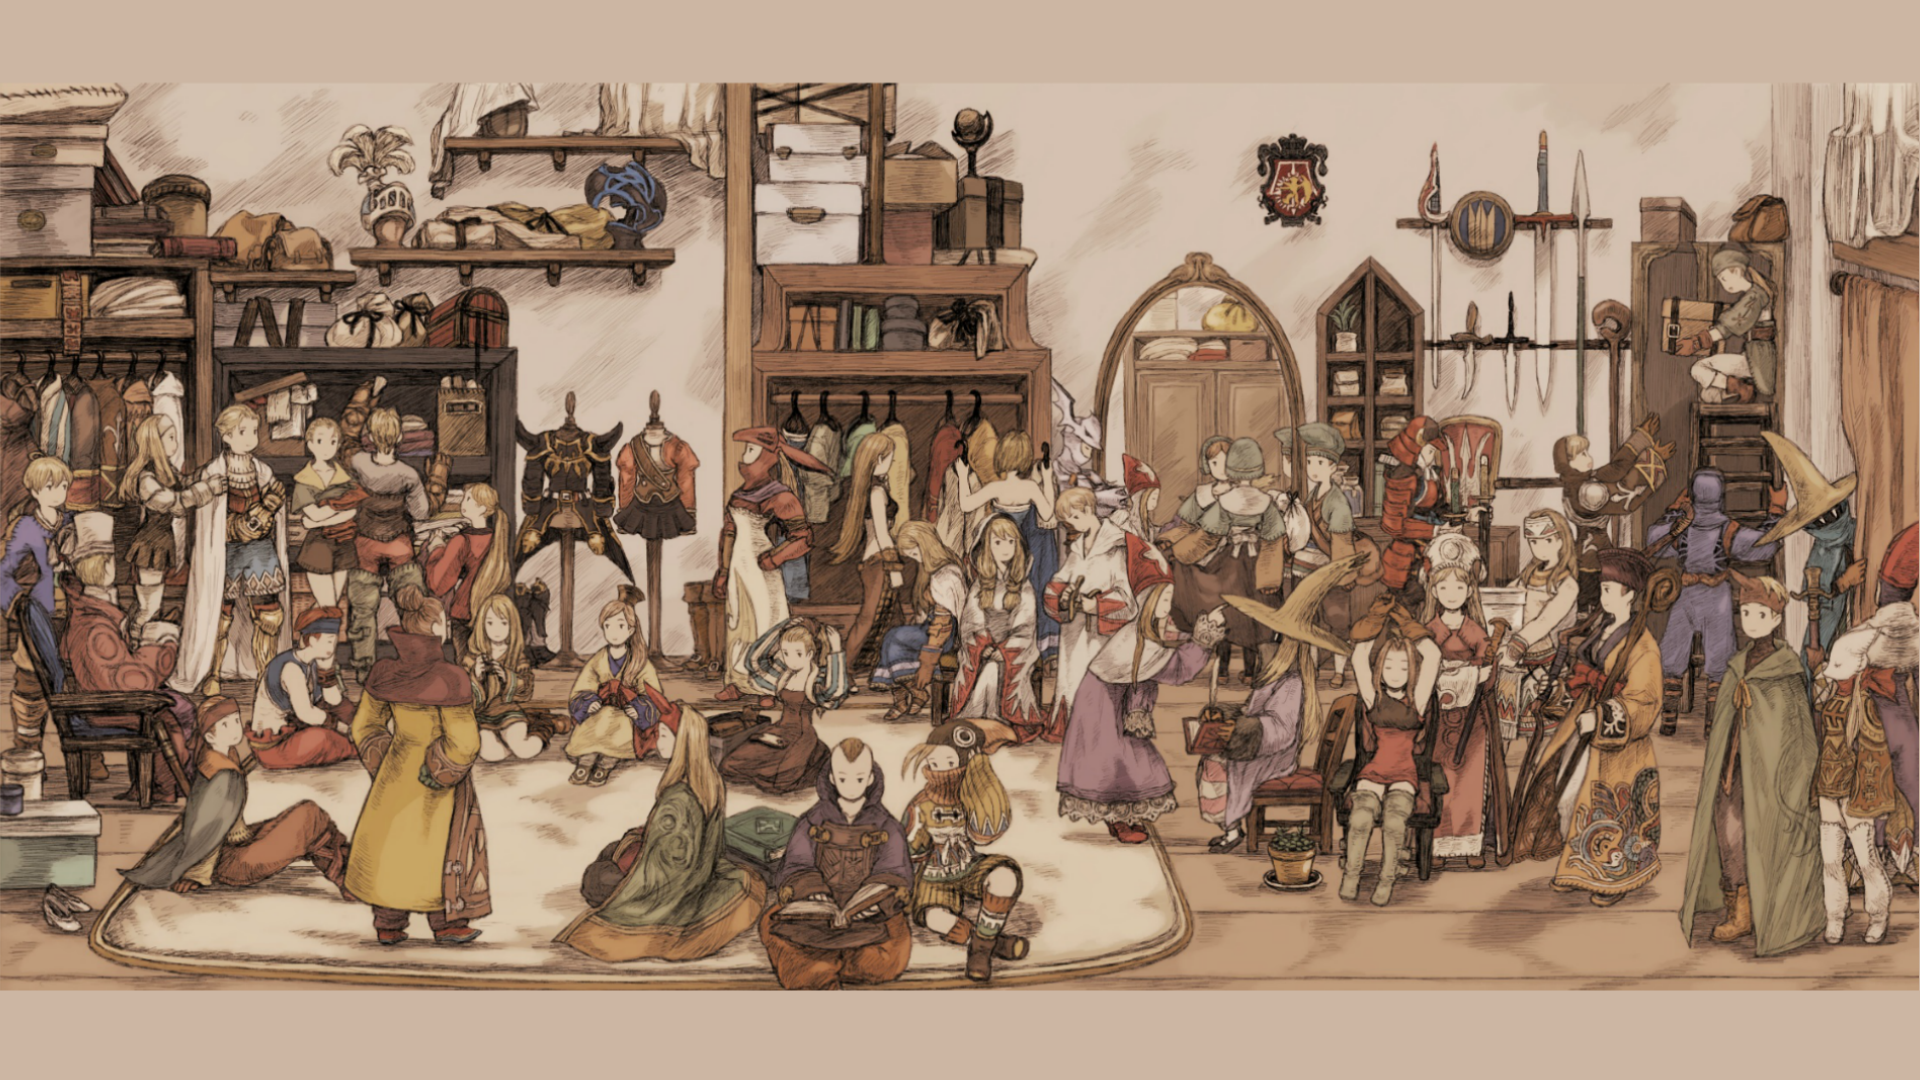 . PlusPng.com Final Fantasy Tactics, Delita, Ramza, Agrias, Job System, Black Mage,  Time Mage, ART, collection, ancient history, christmas decoration, middle  ages PlusPng.com